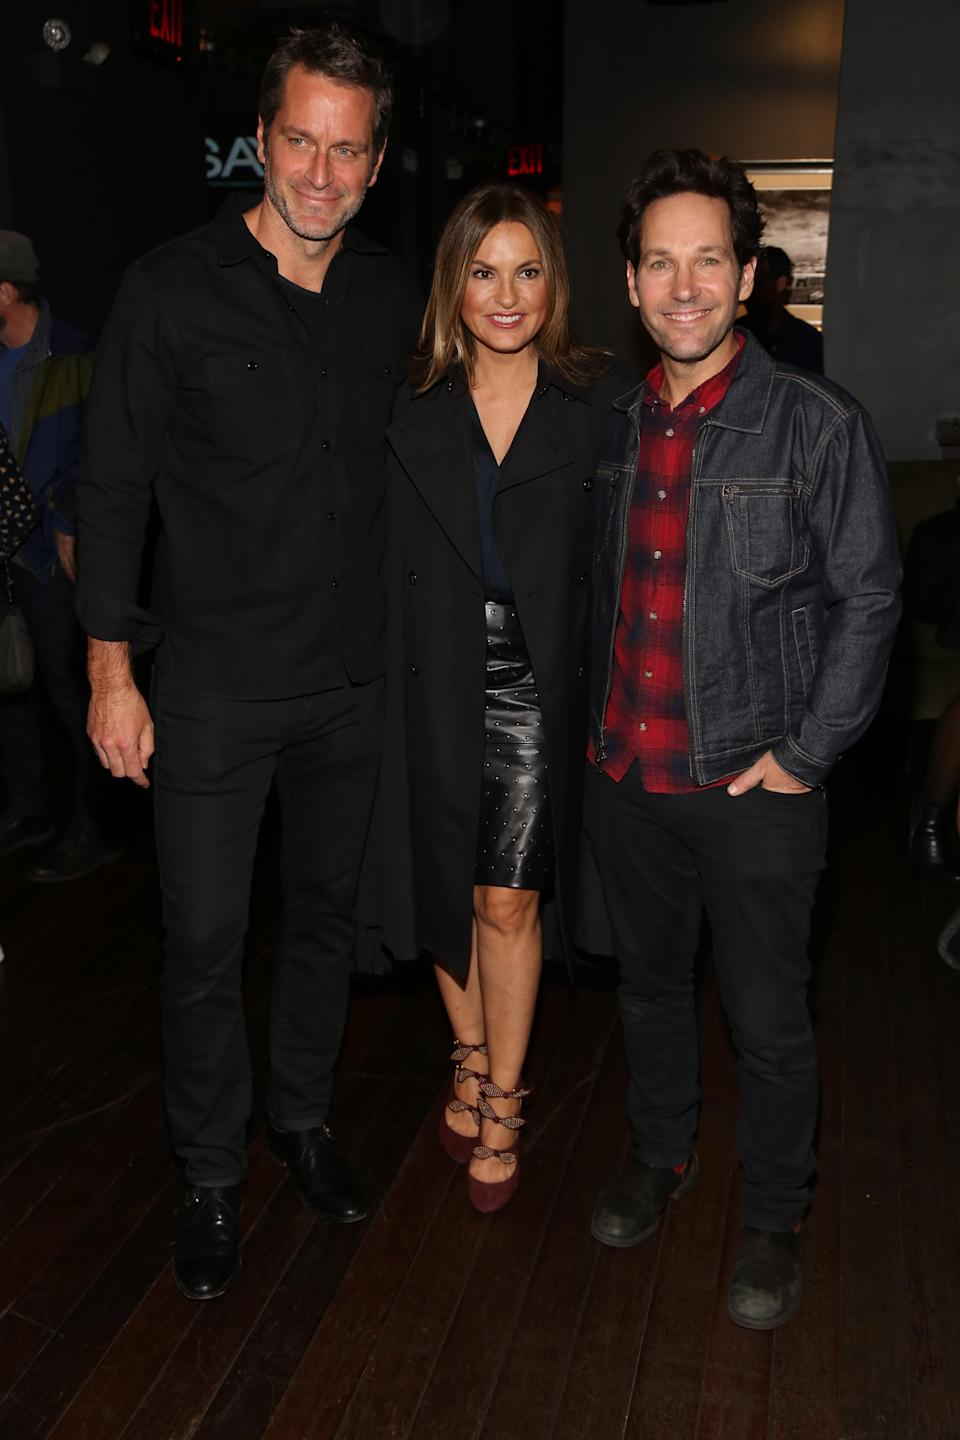 Peter Hermann and Mariska Hargitay joined Paul Rudd at his seventh annual Paul Rudd All-Star Bowling Benefit for the Stuttering Association for the Young (SAY) at Lucky Strike Manhattan on Nov. 5. (Photo: Manny Carabel/Getty Images)